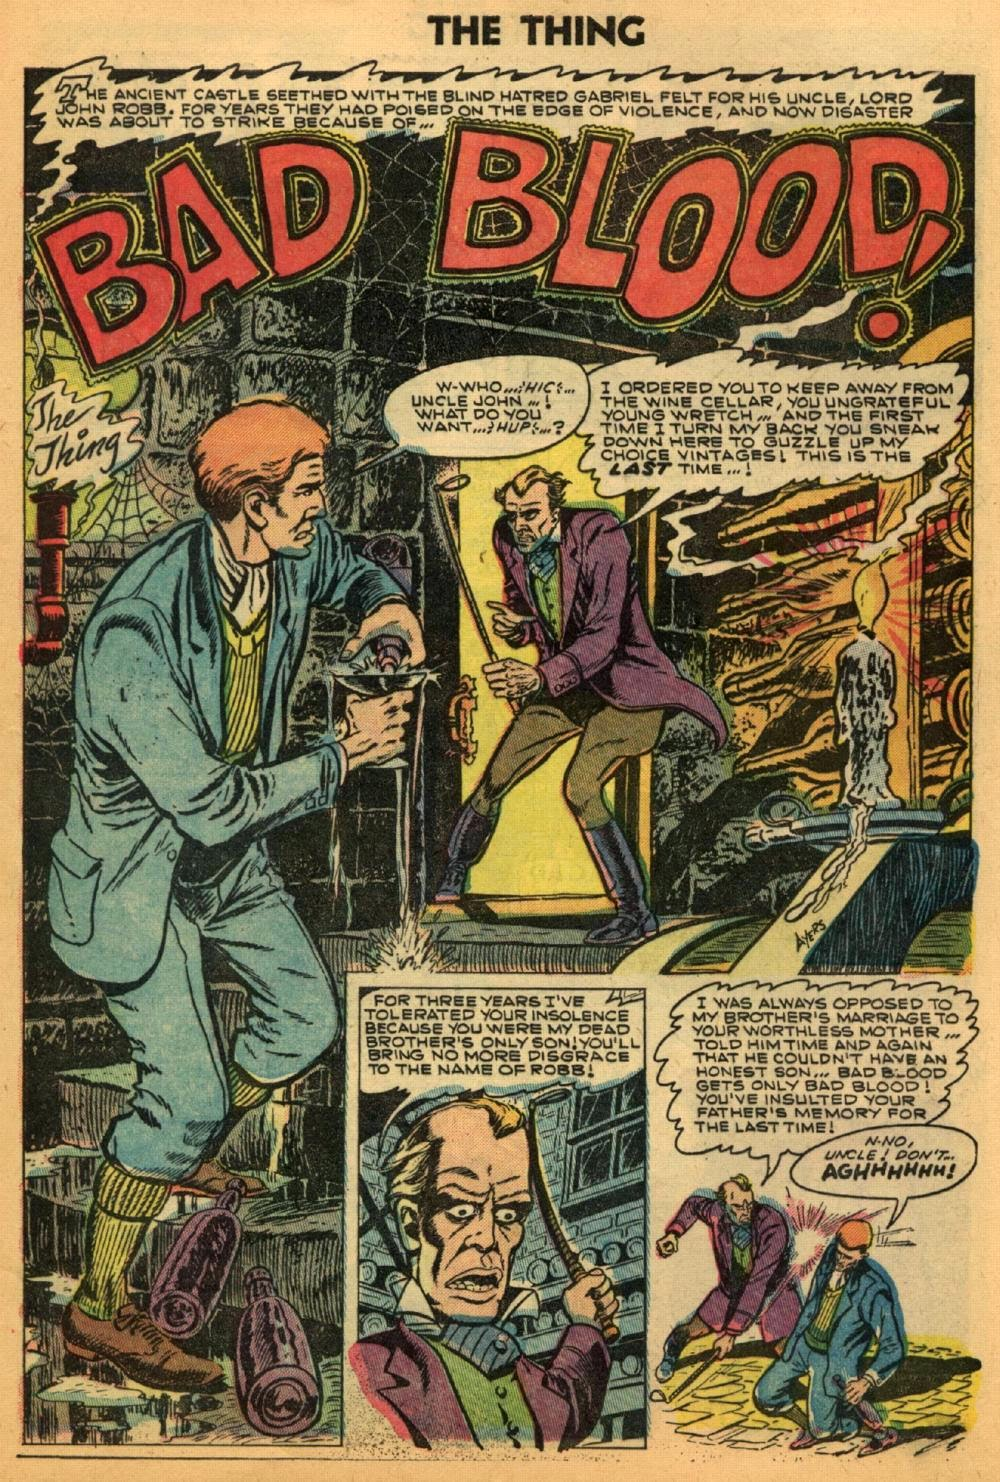 The Thing 17 'Bad Blood'--signed Dick Ayers